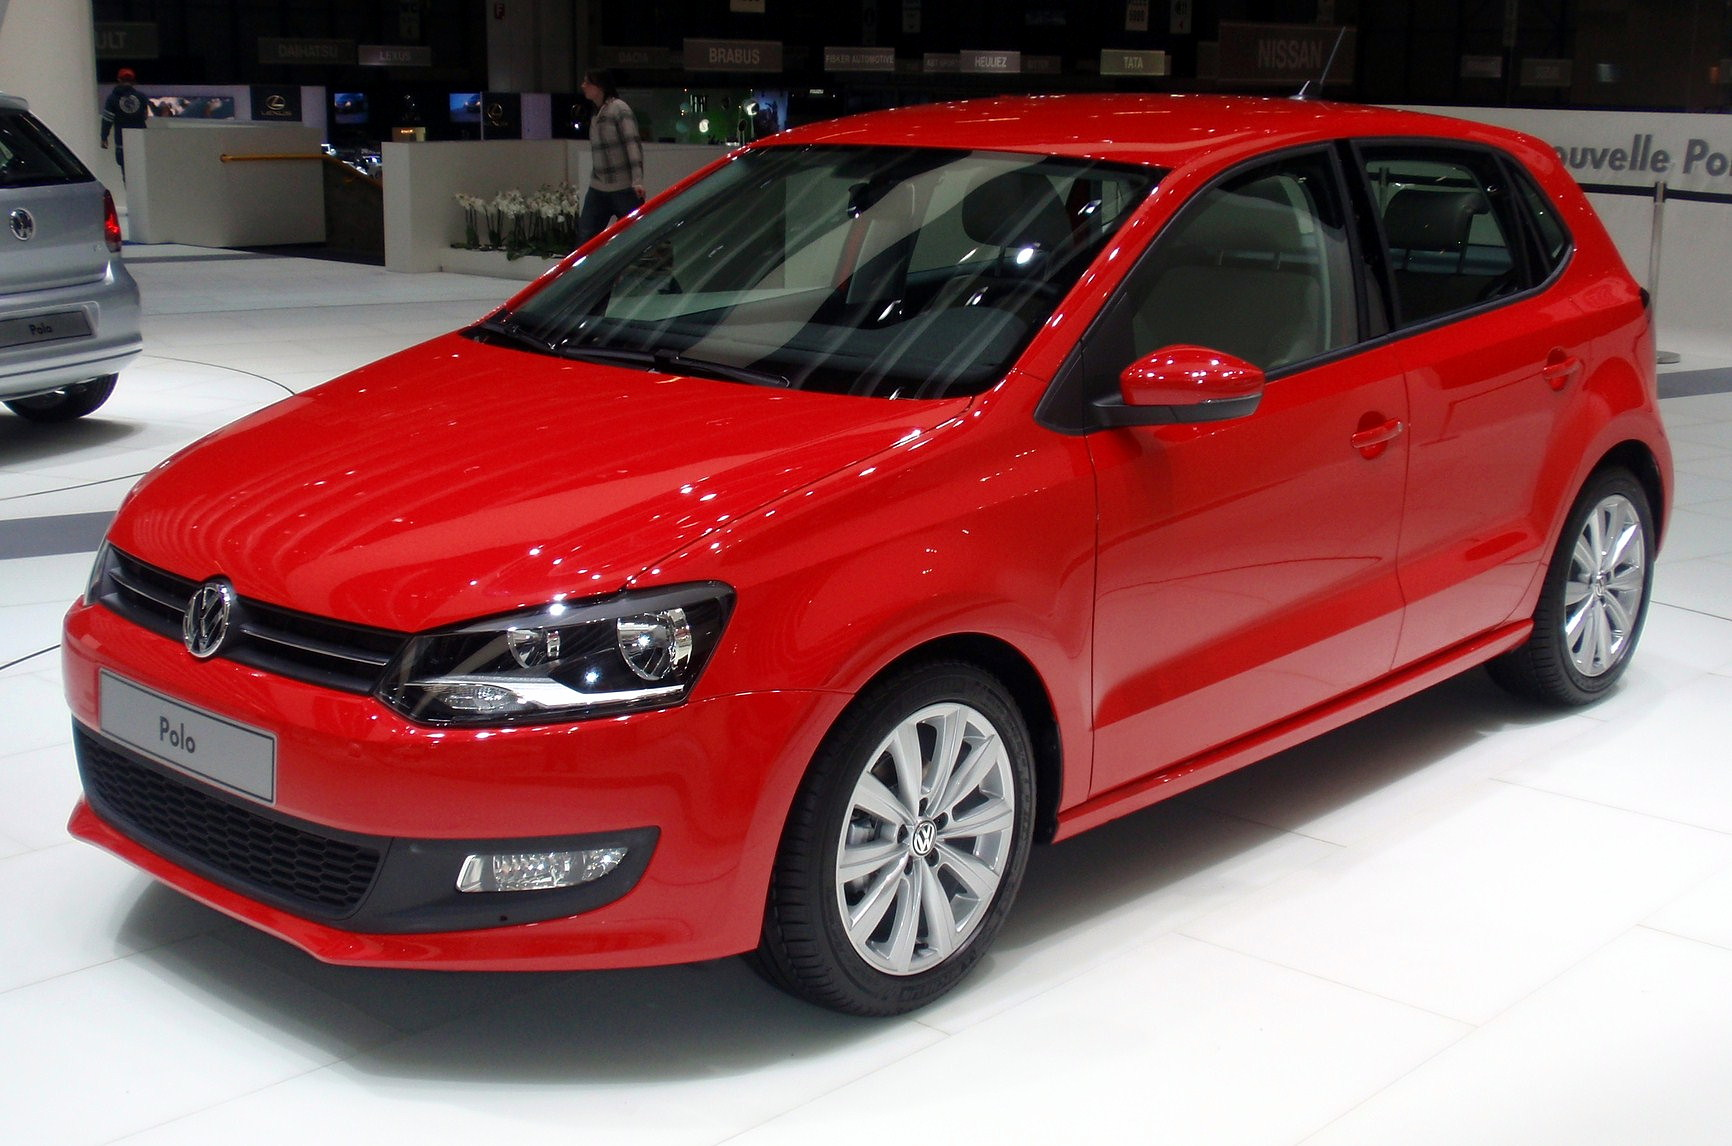 VW Polo photo 01